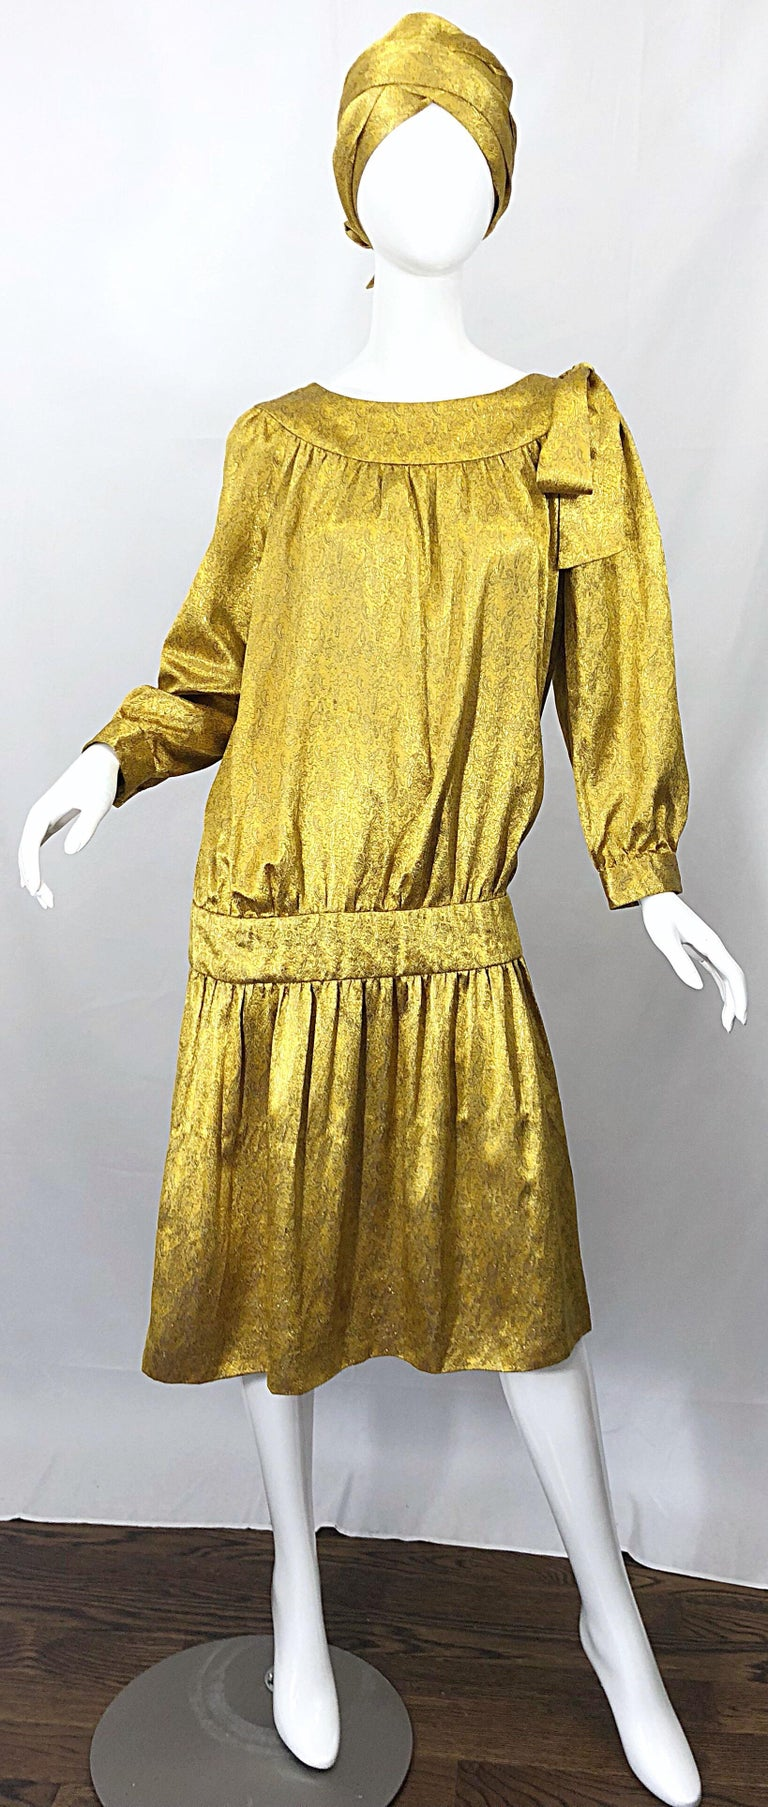 Vintage Brioni Yellow + Gold Silk 1920s Style Drop Waist Dress + Turban Sash For Sale 12